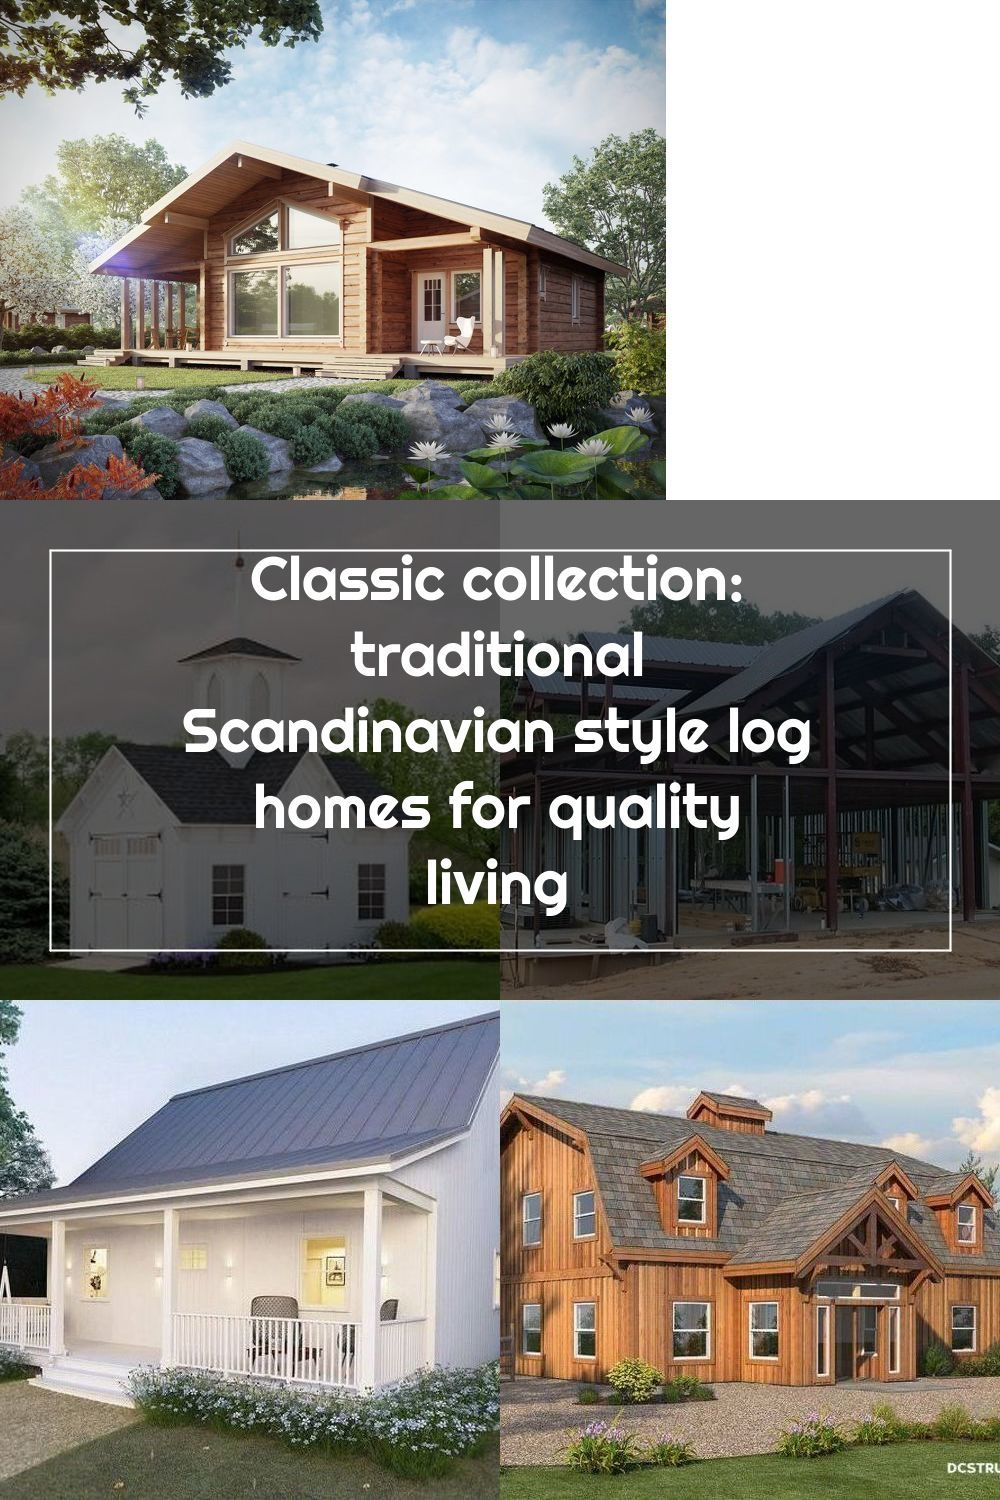 Honka Log Homes Provide A Warm And Harmonious Environment For Living Browse Our Traditional Collection For Ideas And Get Star In 2020 Log Homes Kit Homes House Styles